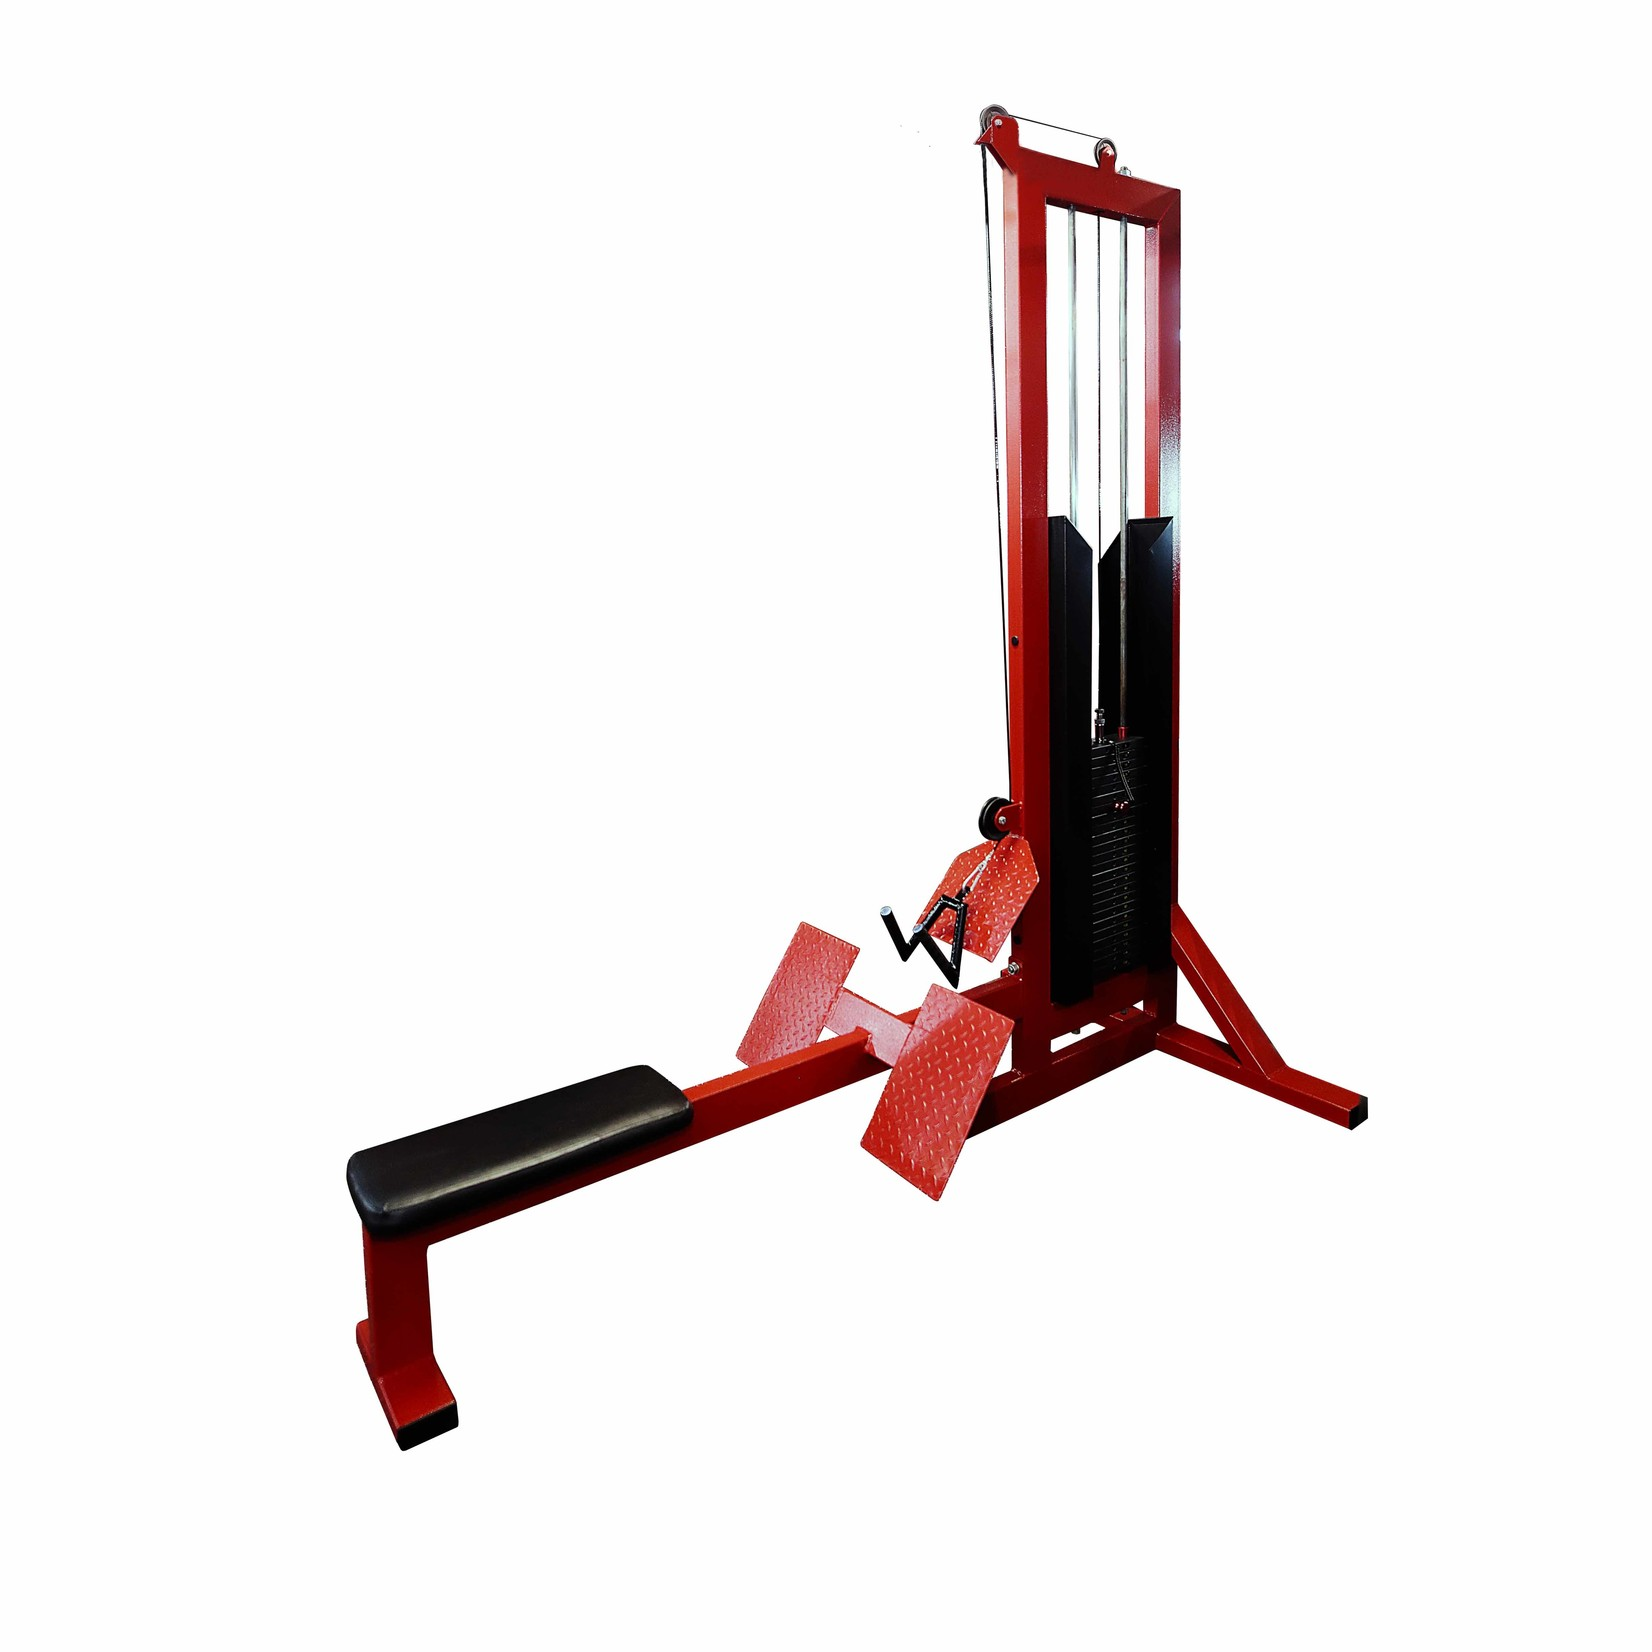 Seated Cable Row Machine 1M